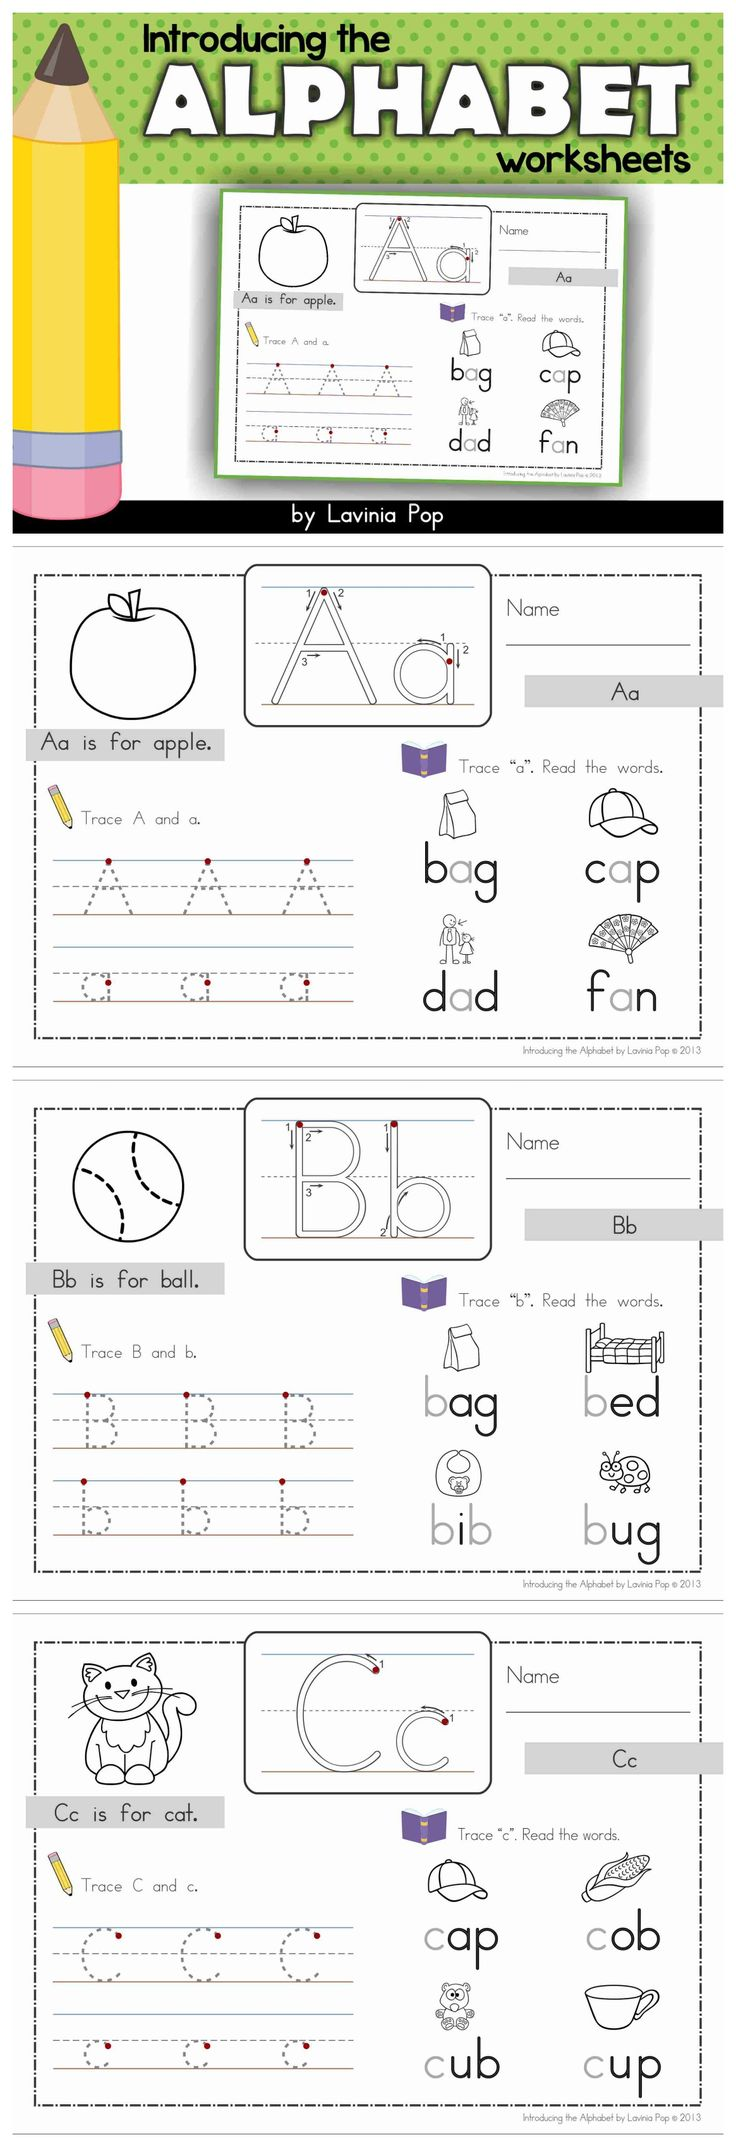 17 Best ideas about English Alphabet on Pinterest  English  grade worksheets, math worksheets, education, multiplication, alphabet worksheets, and learning Phonetic Alphabet Worksheet 2147 x 736